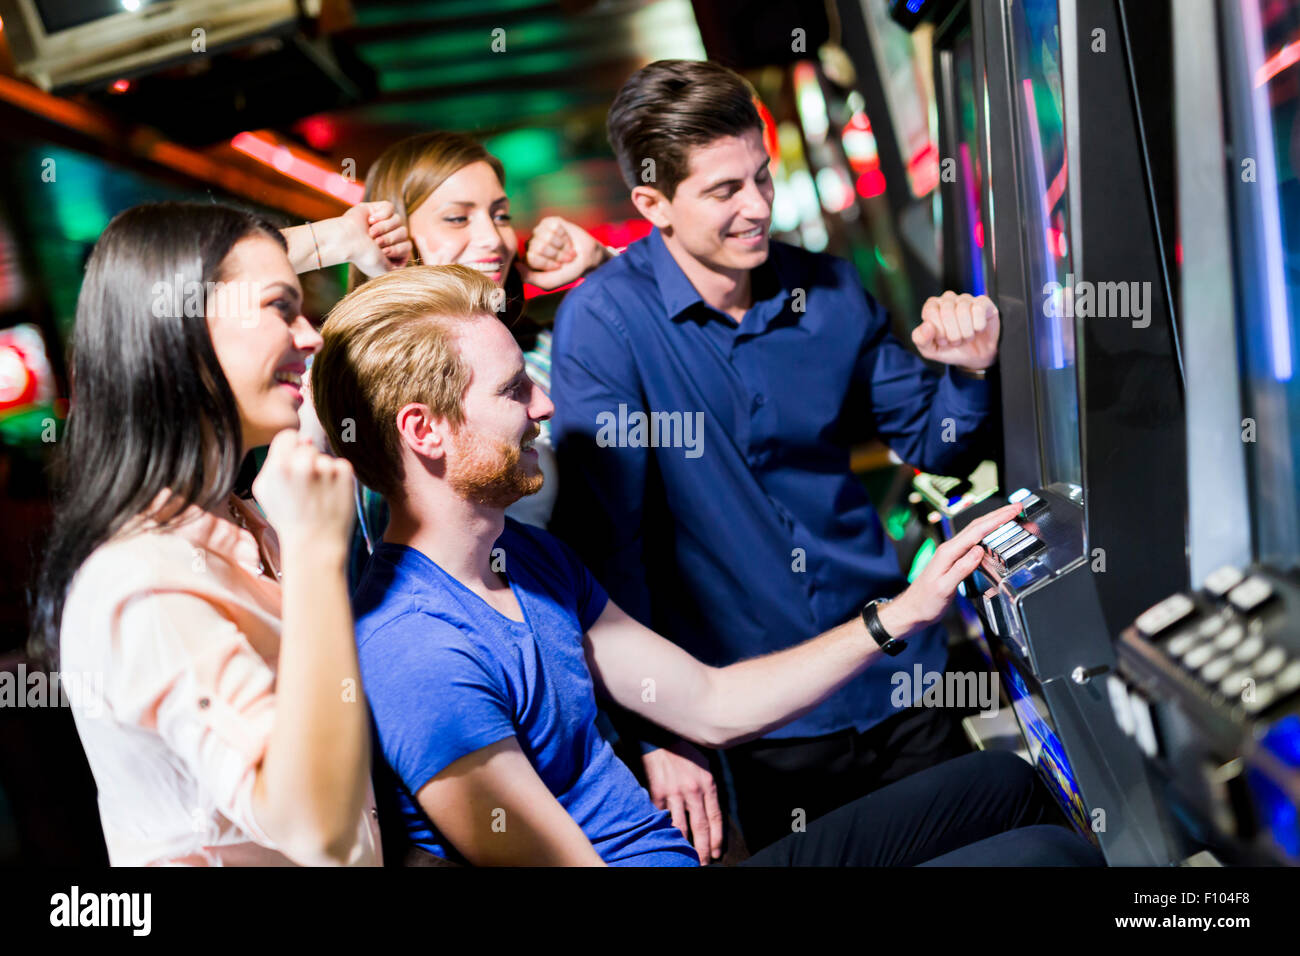 Young group of people gambling in a casino playing slot and various machines - Stock Image